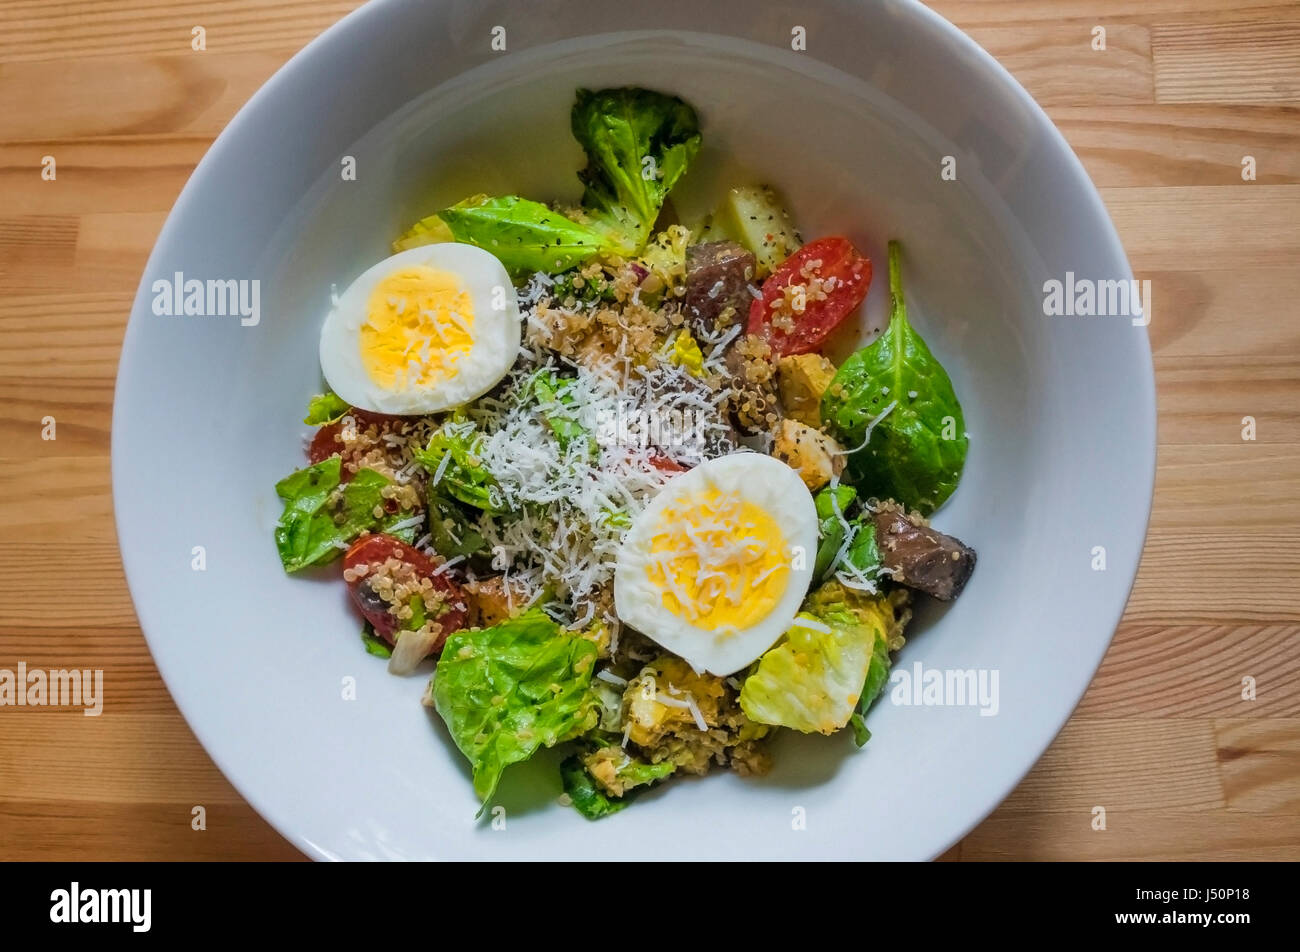 a-mixed-green-salad-in-a-white-bowl-on-a